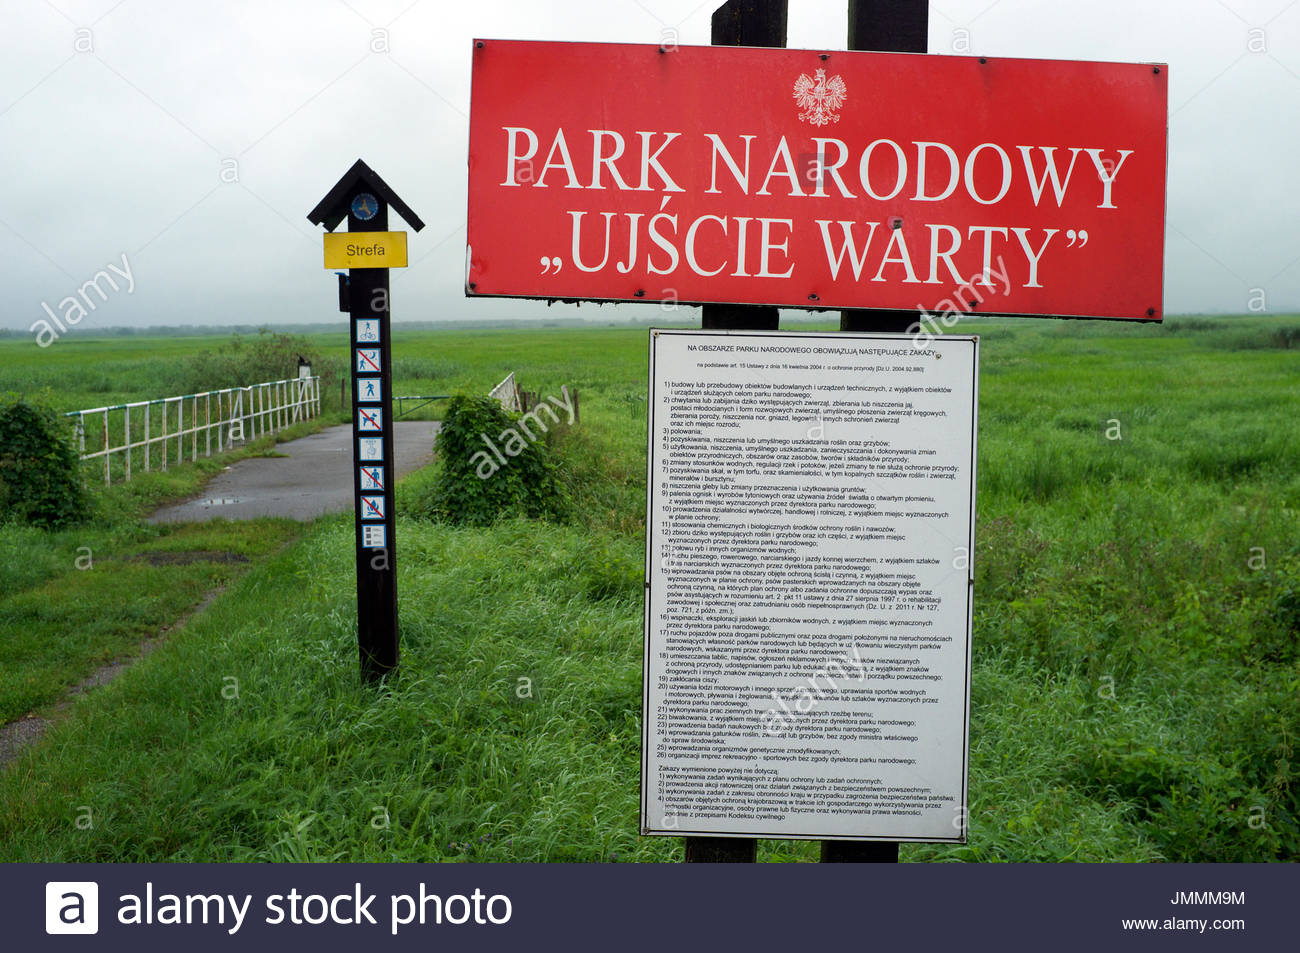 Signage to comprehend when entering the Ujscie Warty National Park (Park Narodowy Ujscie Warty), in western Poland. - Stock Image